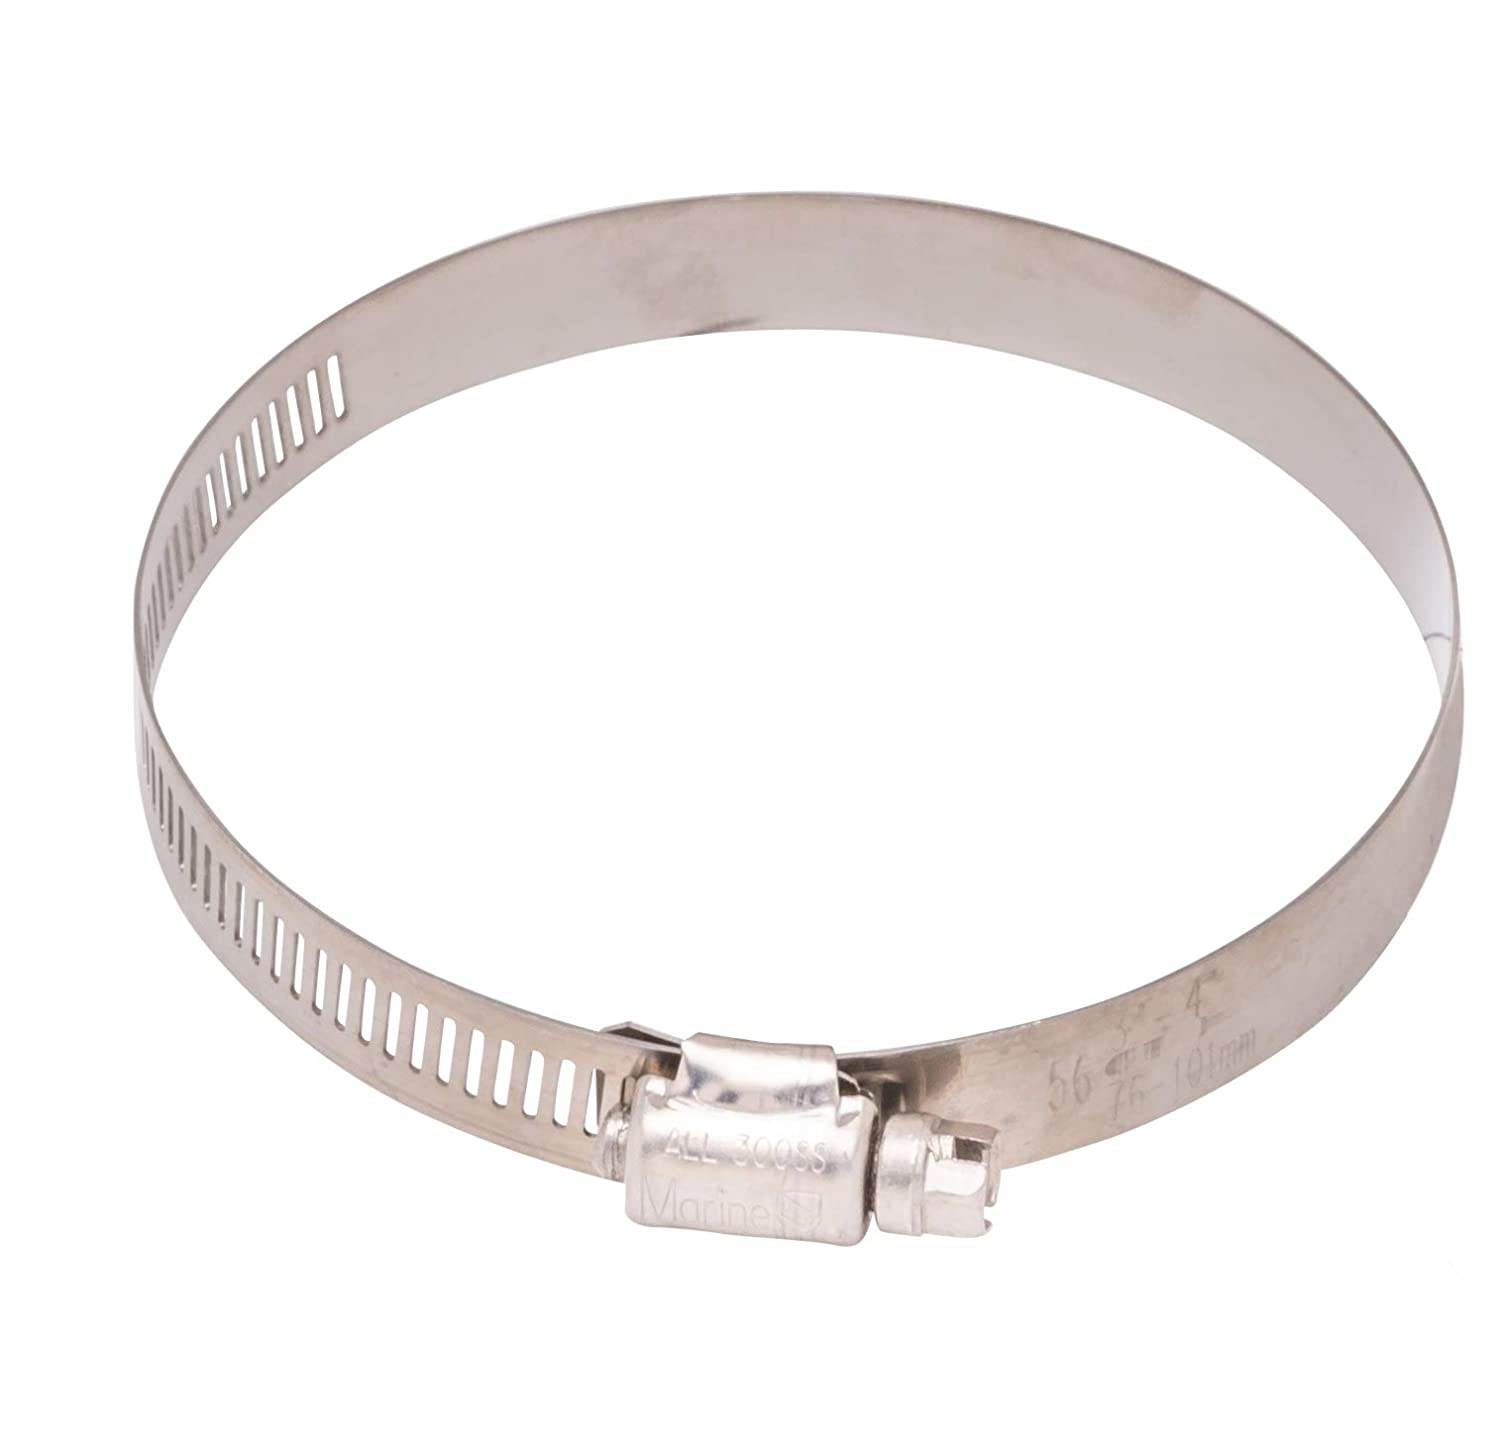 300 SS #24 Stainless Hose Clamp 10pc 1-2 18-8 S//S 1//2 Wide Band Diameter